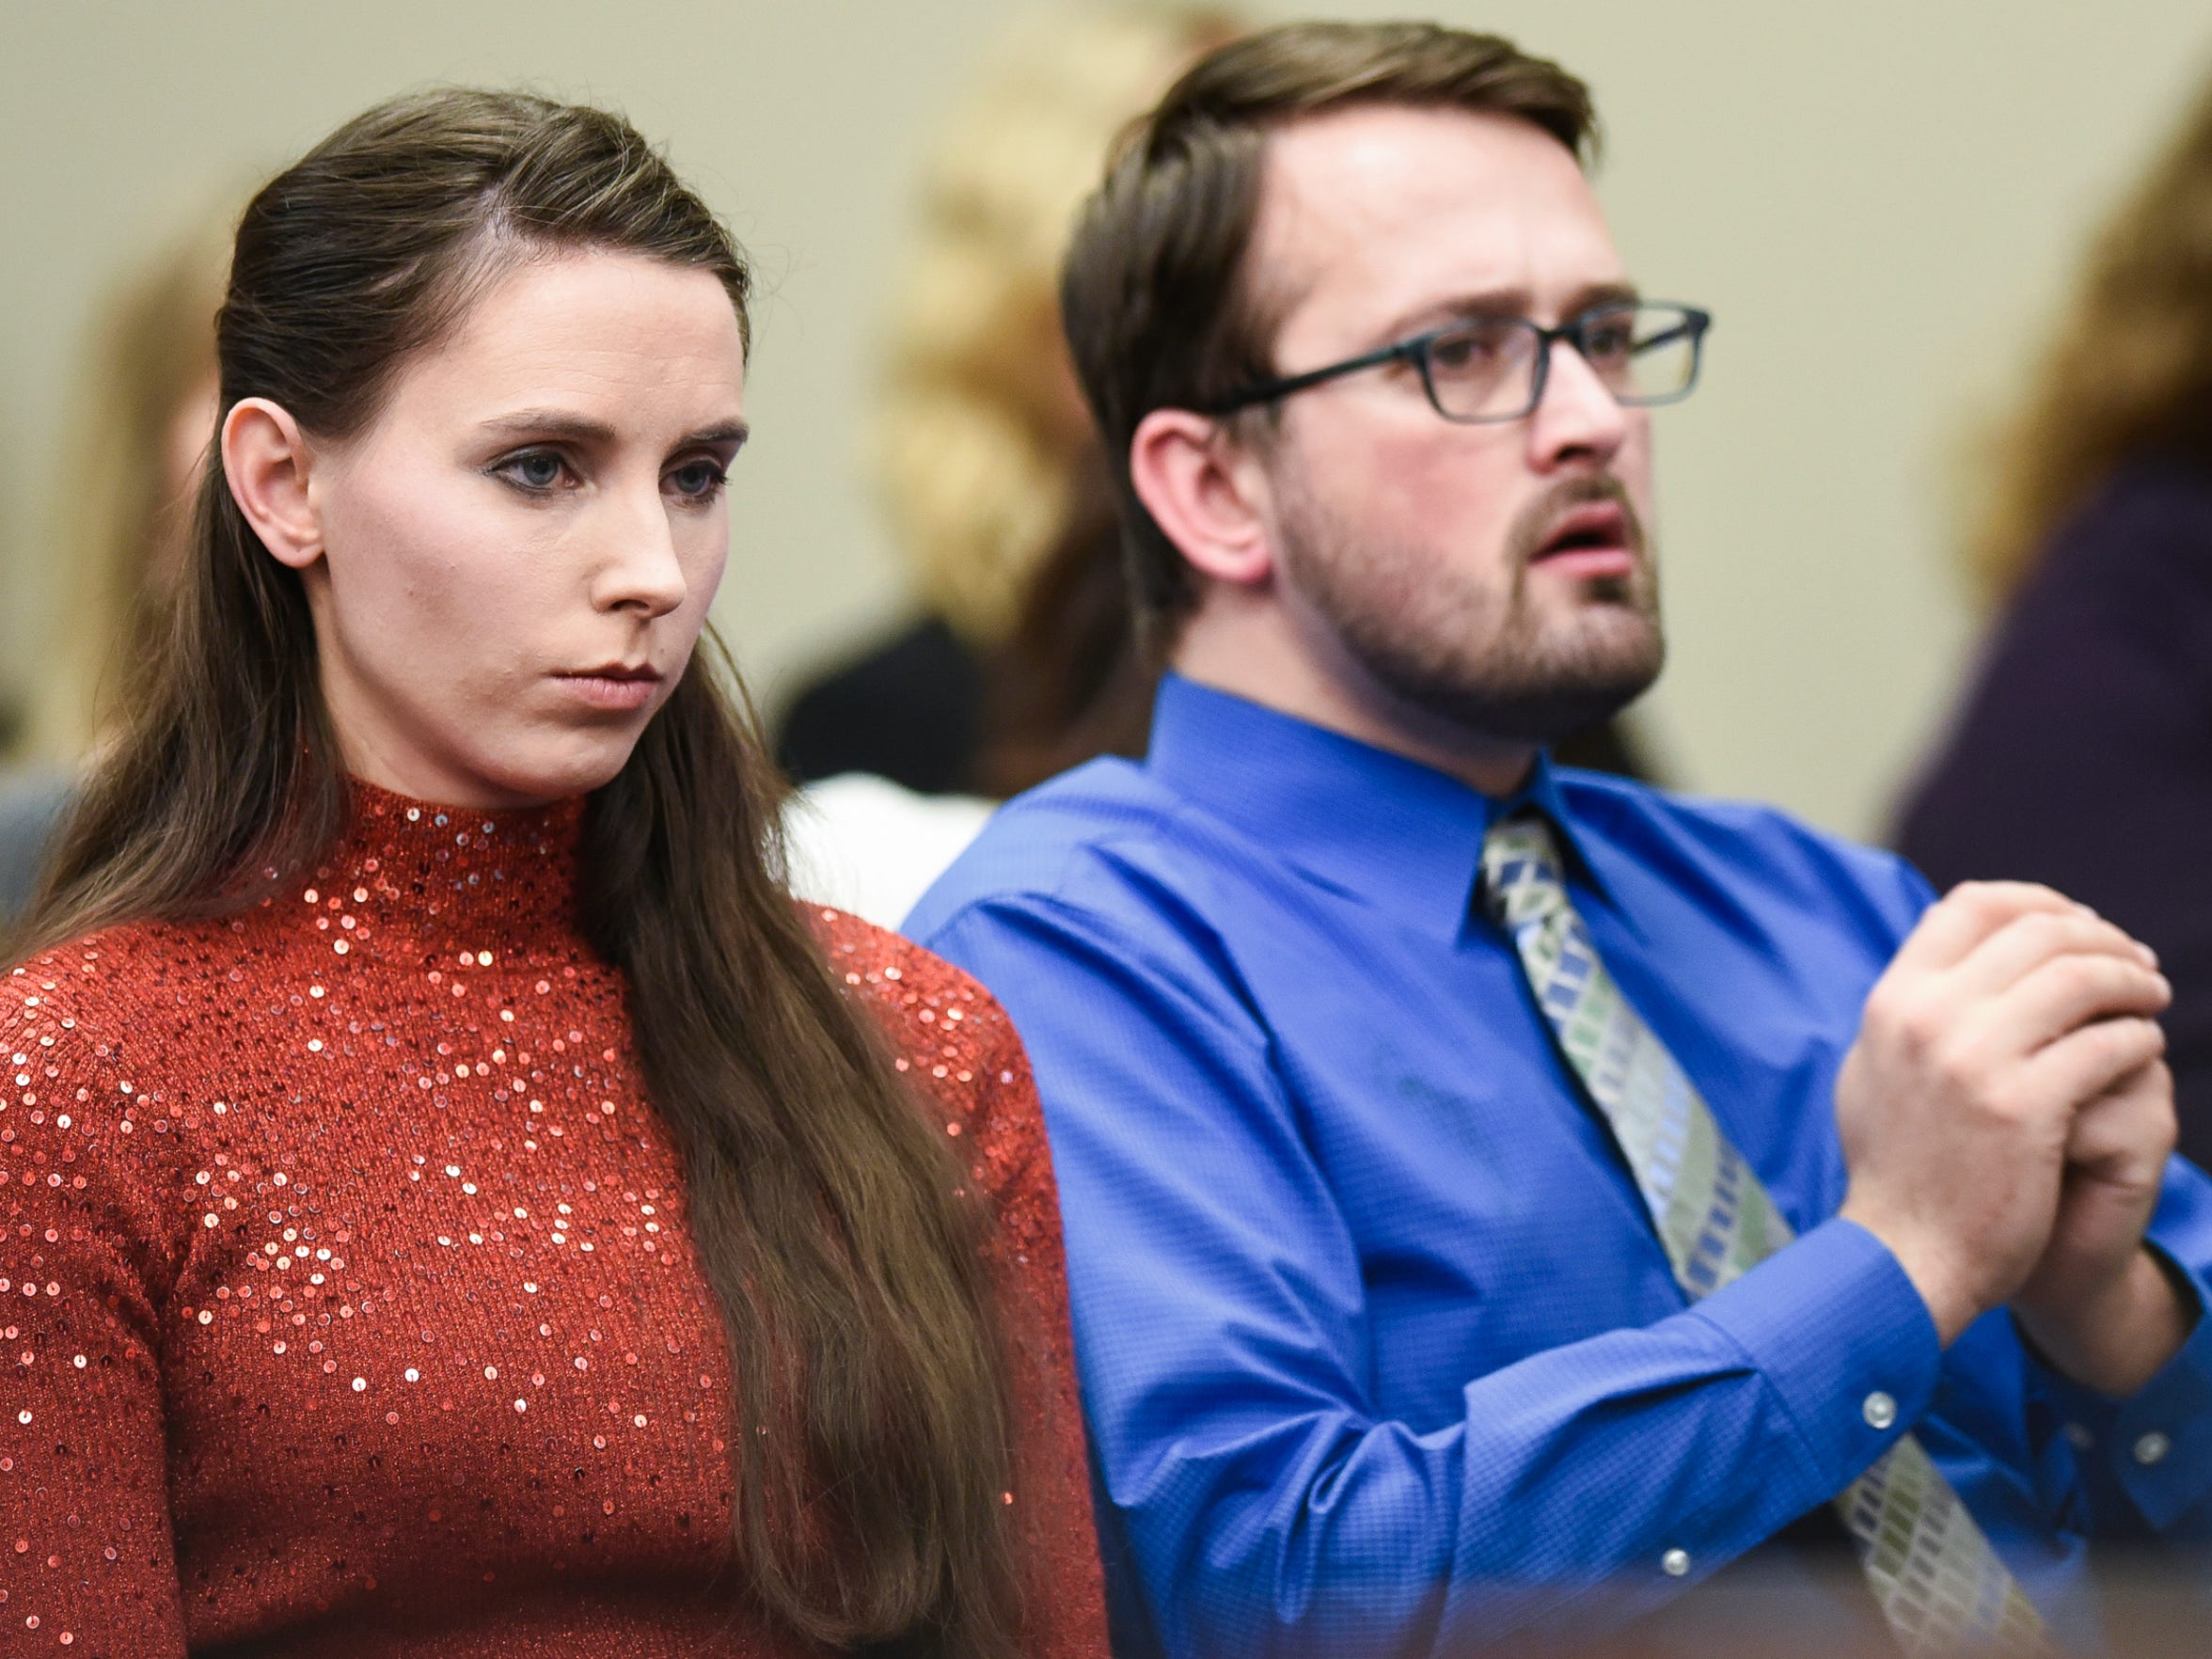 Rachael and Jacob Denhollander listen to victim impact statements on Monday, Jan. 22, 2018, the fifth day of Larry Nassar's sentencing hearing in Ingham County Circuit Court. Denhollander's August 2016 report began the investigation that ended with more than 200 victims.